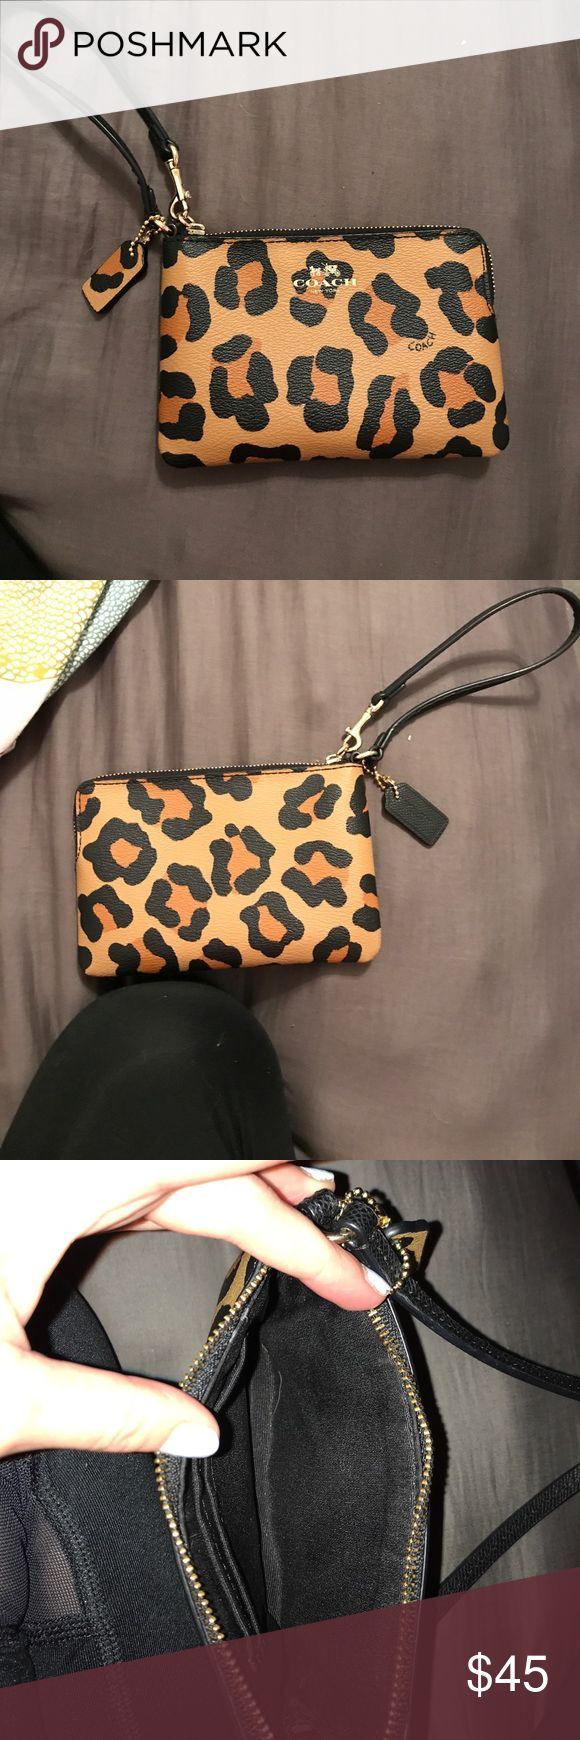 Coach Wristlet (Open to Offers) Brand New and never used (the tag fell off). It came directly from a coach store and is authentic. The outside is leopard print leather. The inside lining is black. There are two cars holding slots on the inside as well. This is a perfect accessory to carry alone or in a purse. It's also big enough to fit an iPhone 7 or smaller making it a excellent item for going out when you don't want to carry a large purse. I'm open to offers. No trades Coach Bags Clutches…